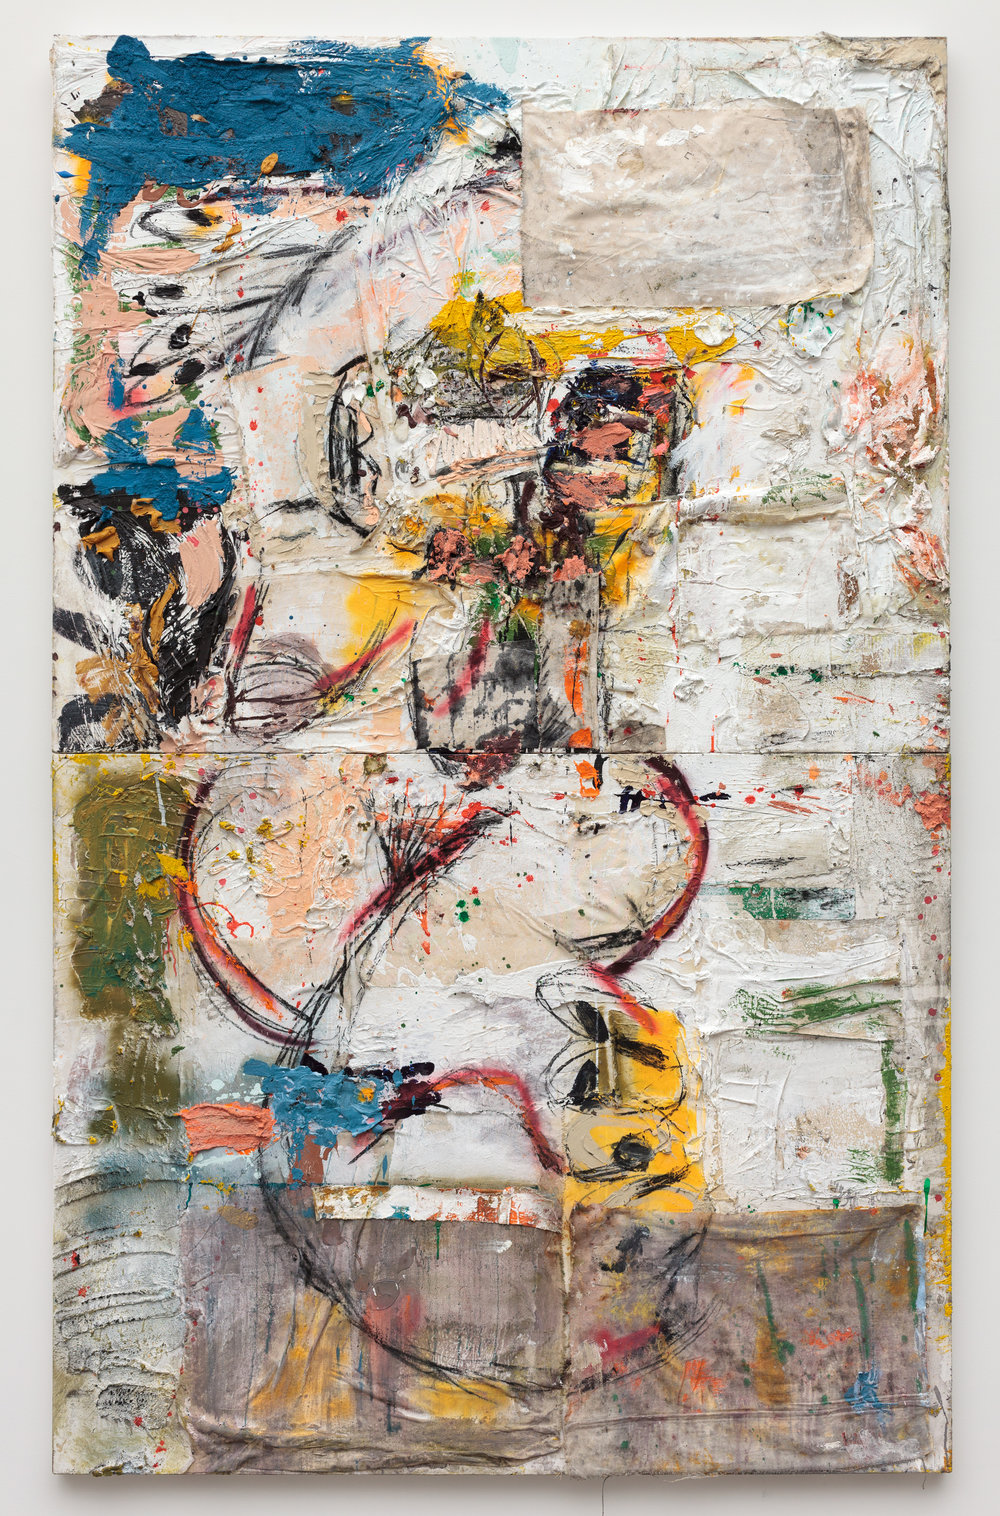 """Yasigi broken (blue, yellow, white)"" (2017)  Oil, acrylic, ink, spray paint, charcoal, coarse pumice gel and collaged materials on canvas  Installed: 96 x 60 in (2 panels)"